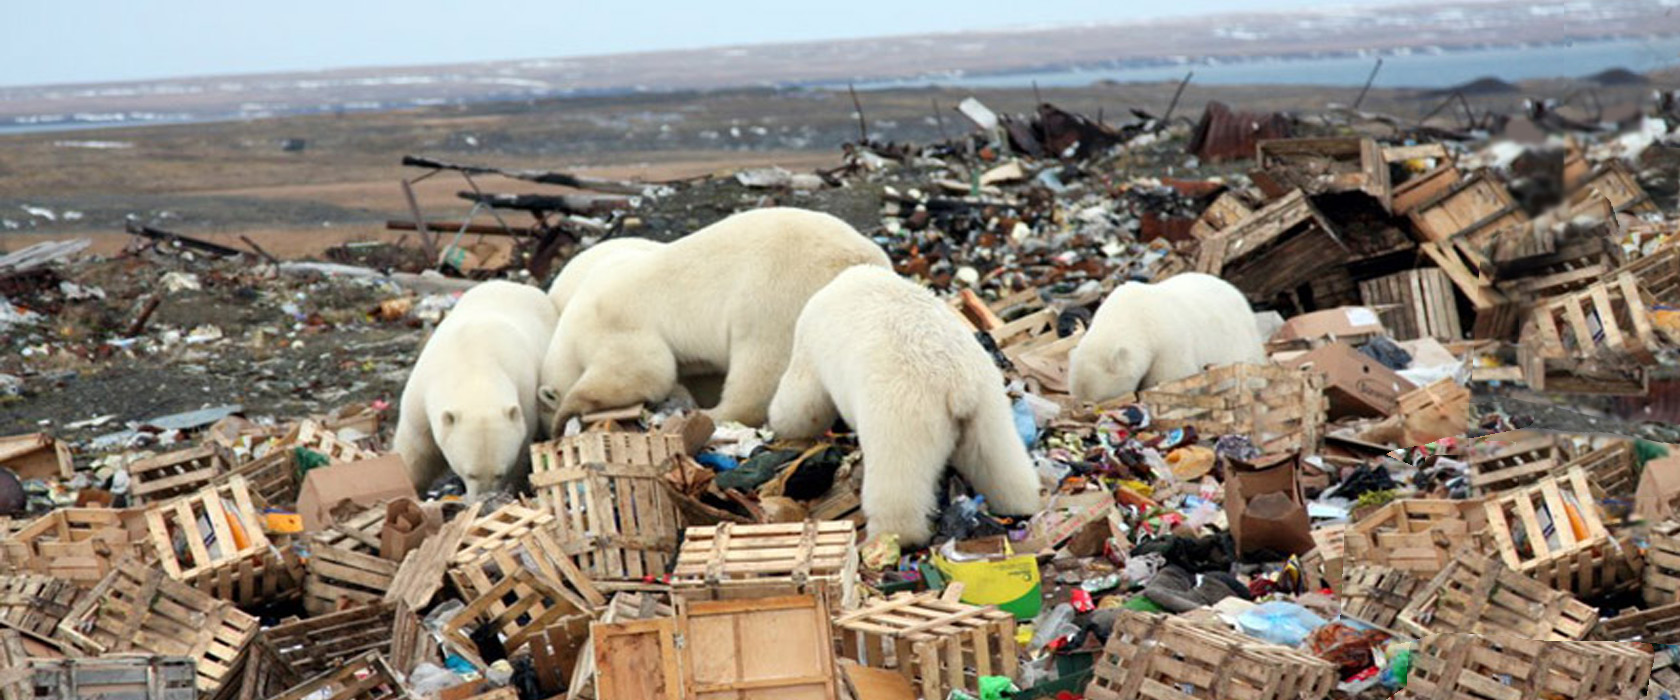 Polar Bears in Garbage